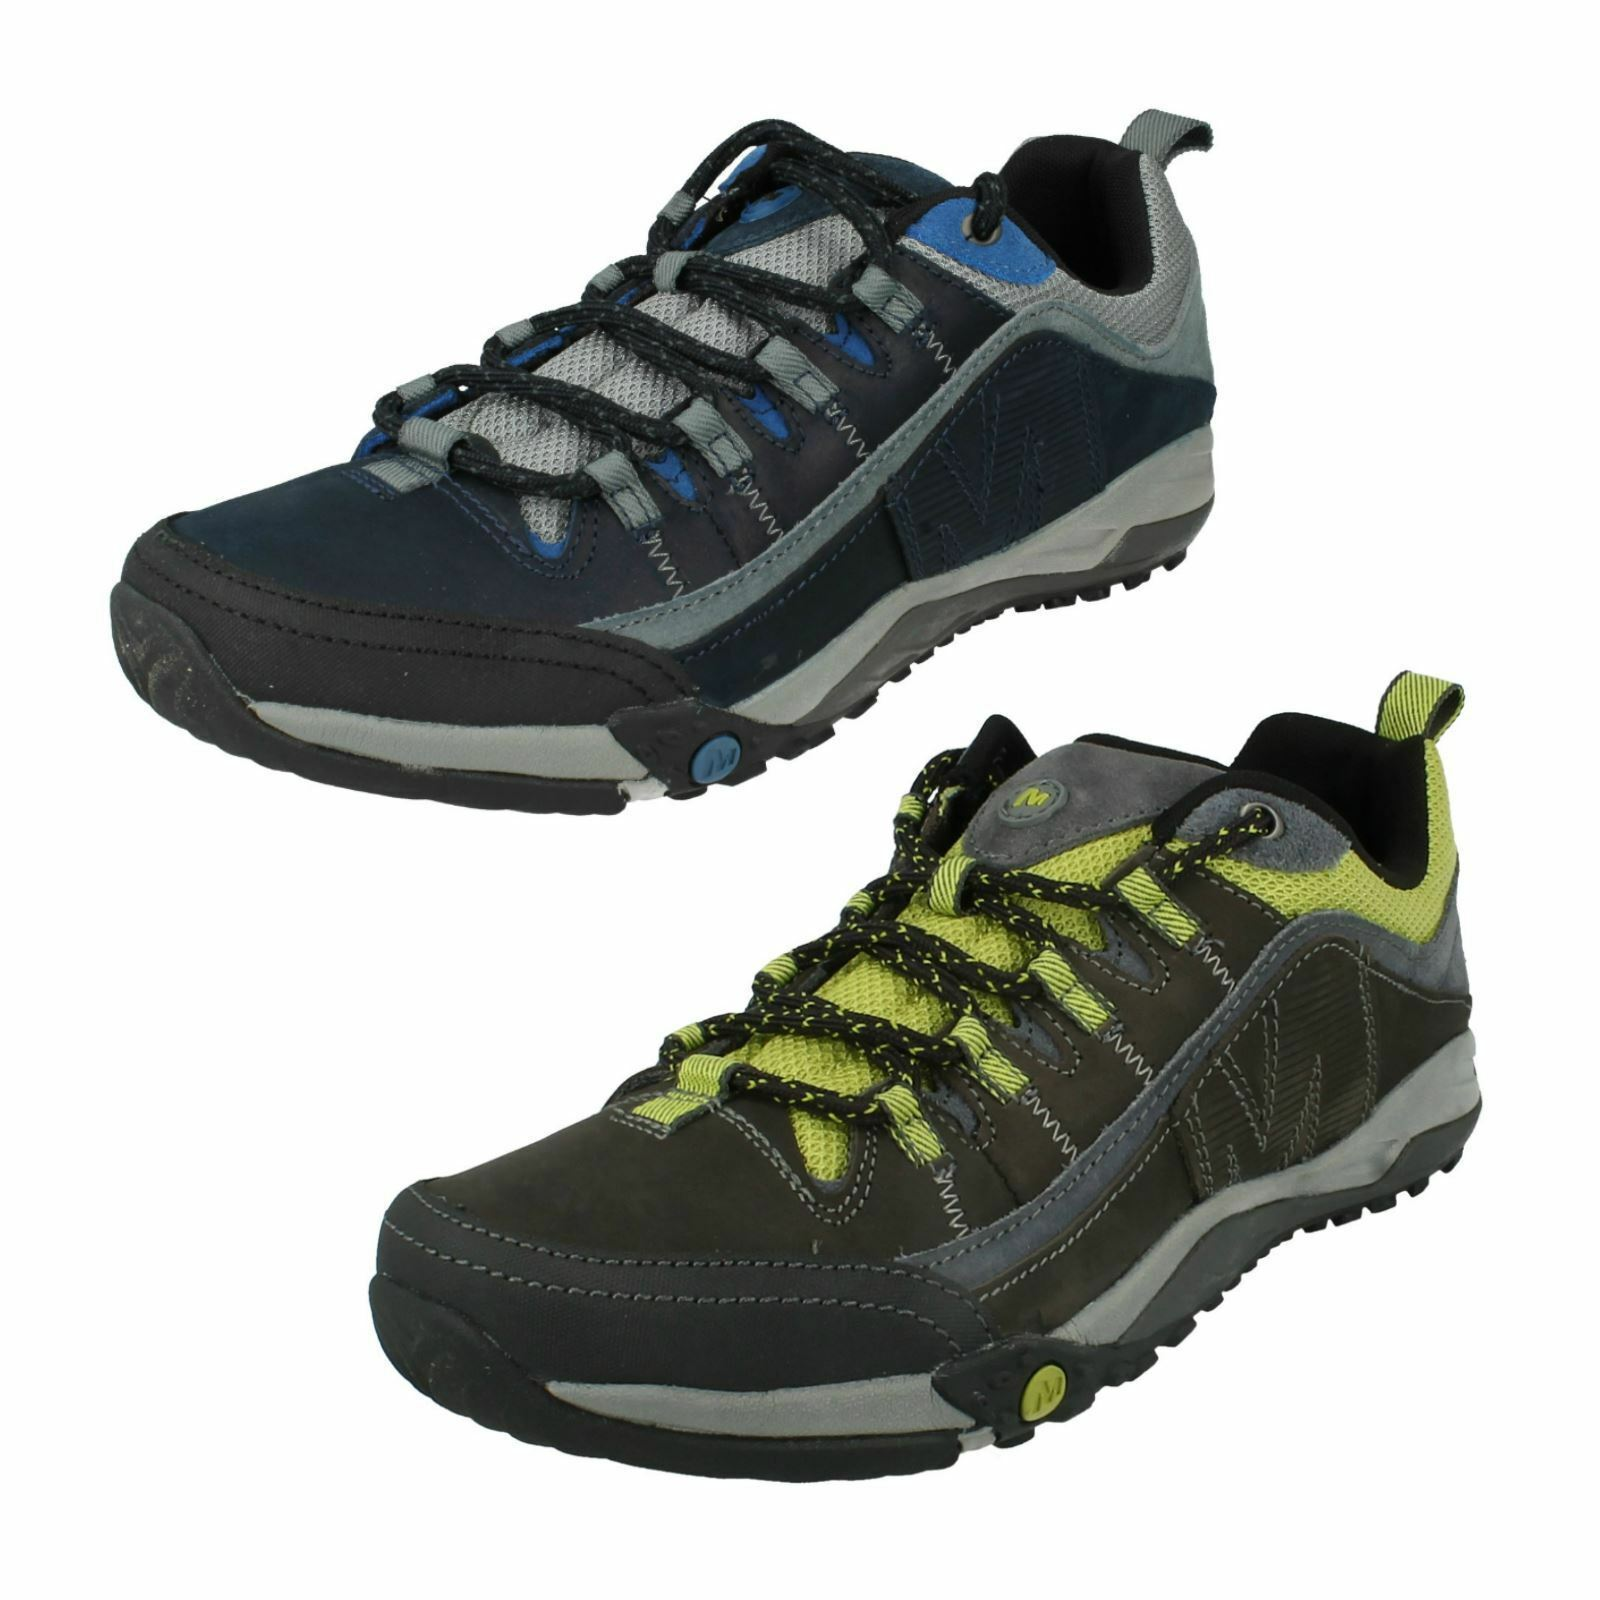 MENS MERRELL CASUAL LACE UP LEATHER WALKING HIKING SHOES HELIXER DISTORT